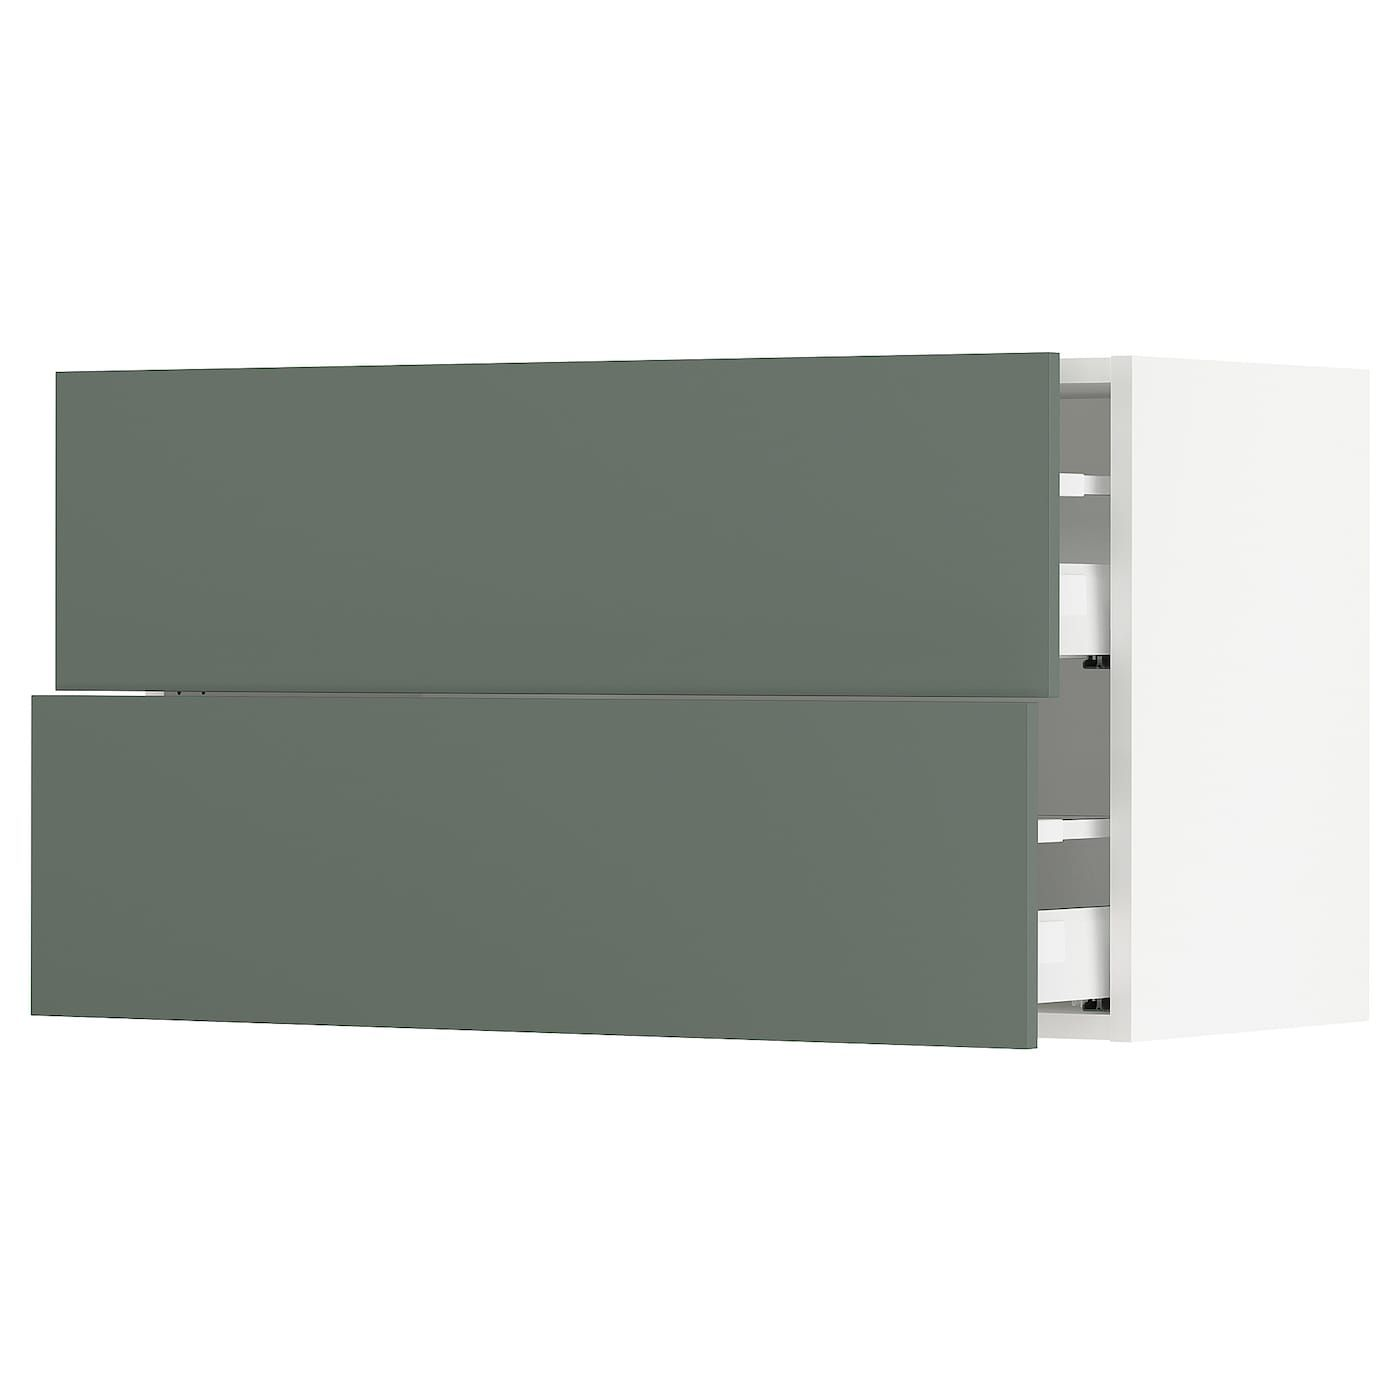 Ikea Sektion White Maximera Bodarp Gray Green Wall Cabinet With 2 Drawers In 2020 Ikea Green Grey Kitchen Wall Cabinets